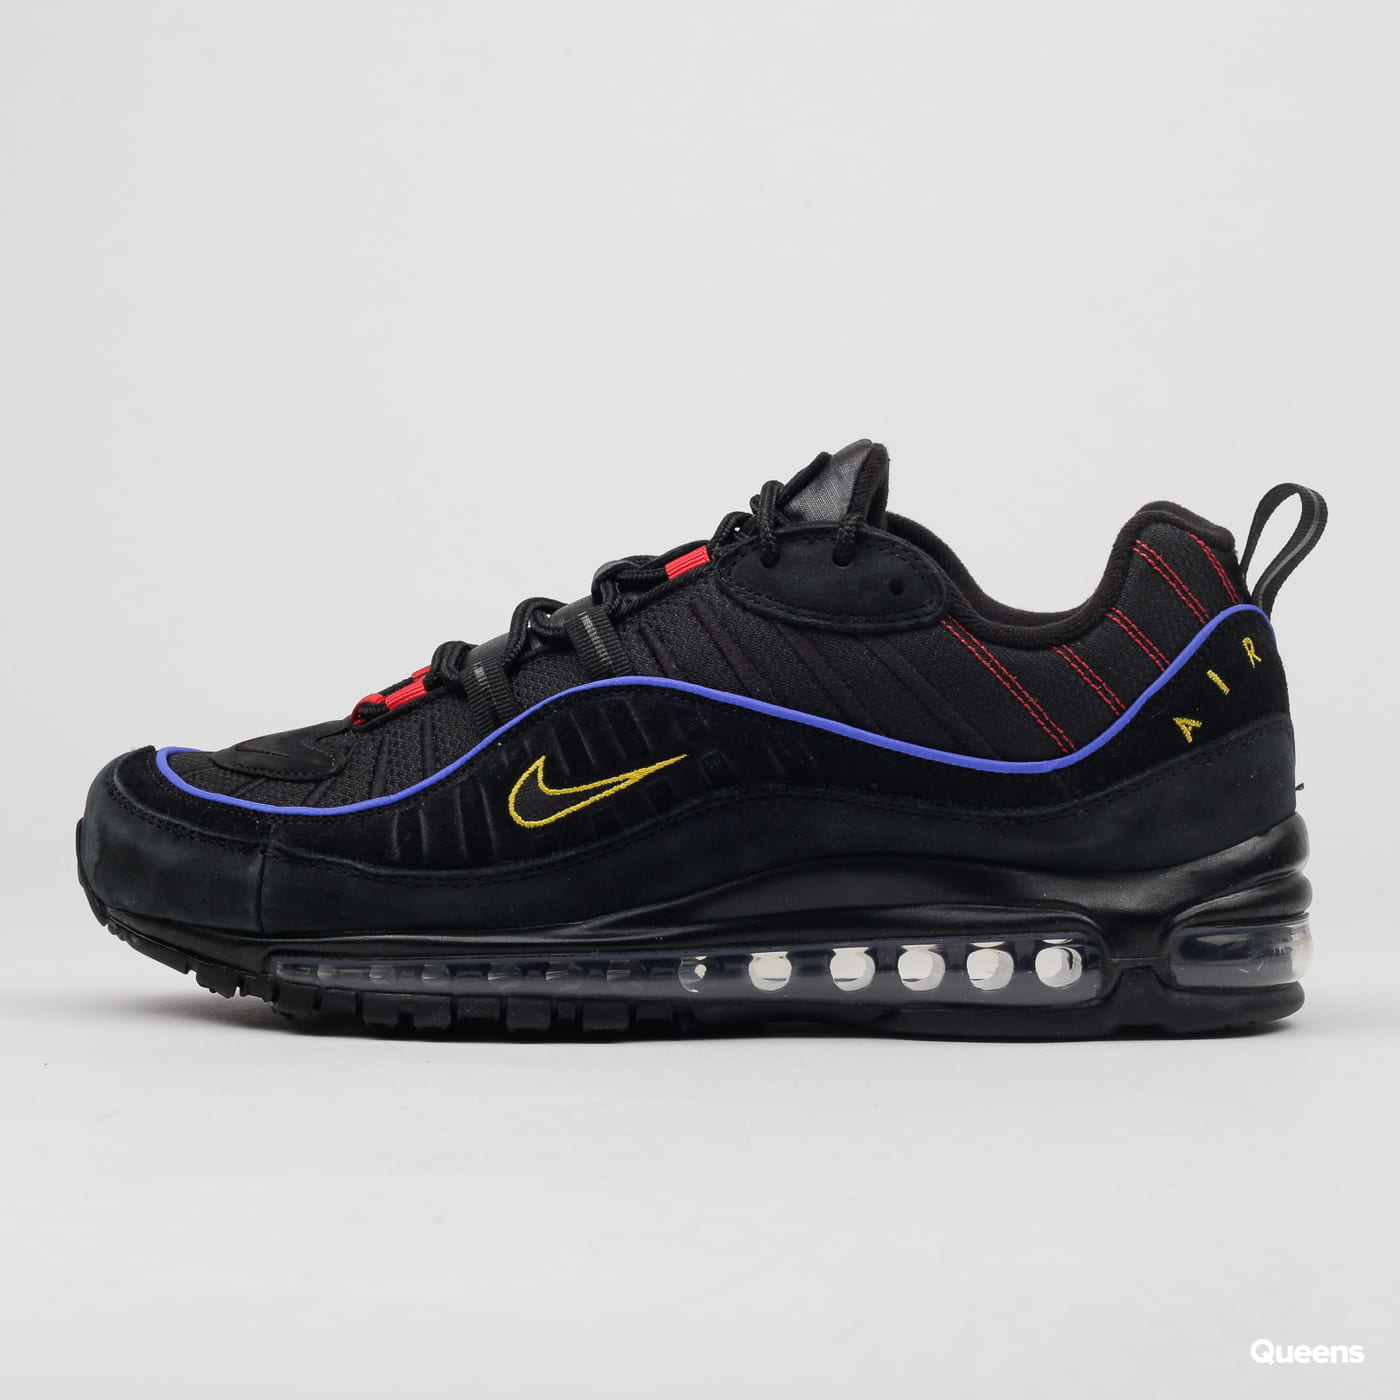 Nike Air Max 98 black / black - amarillo